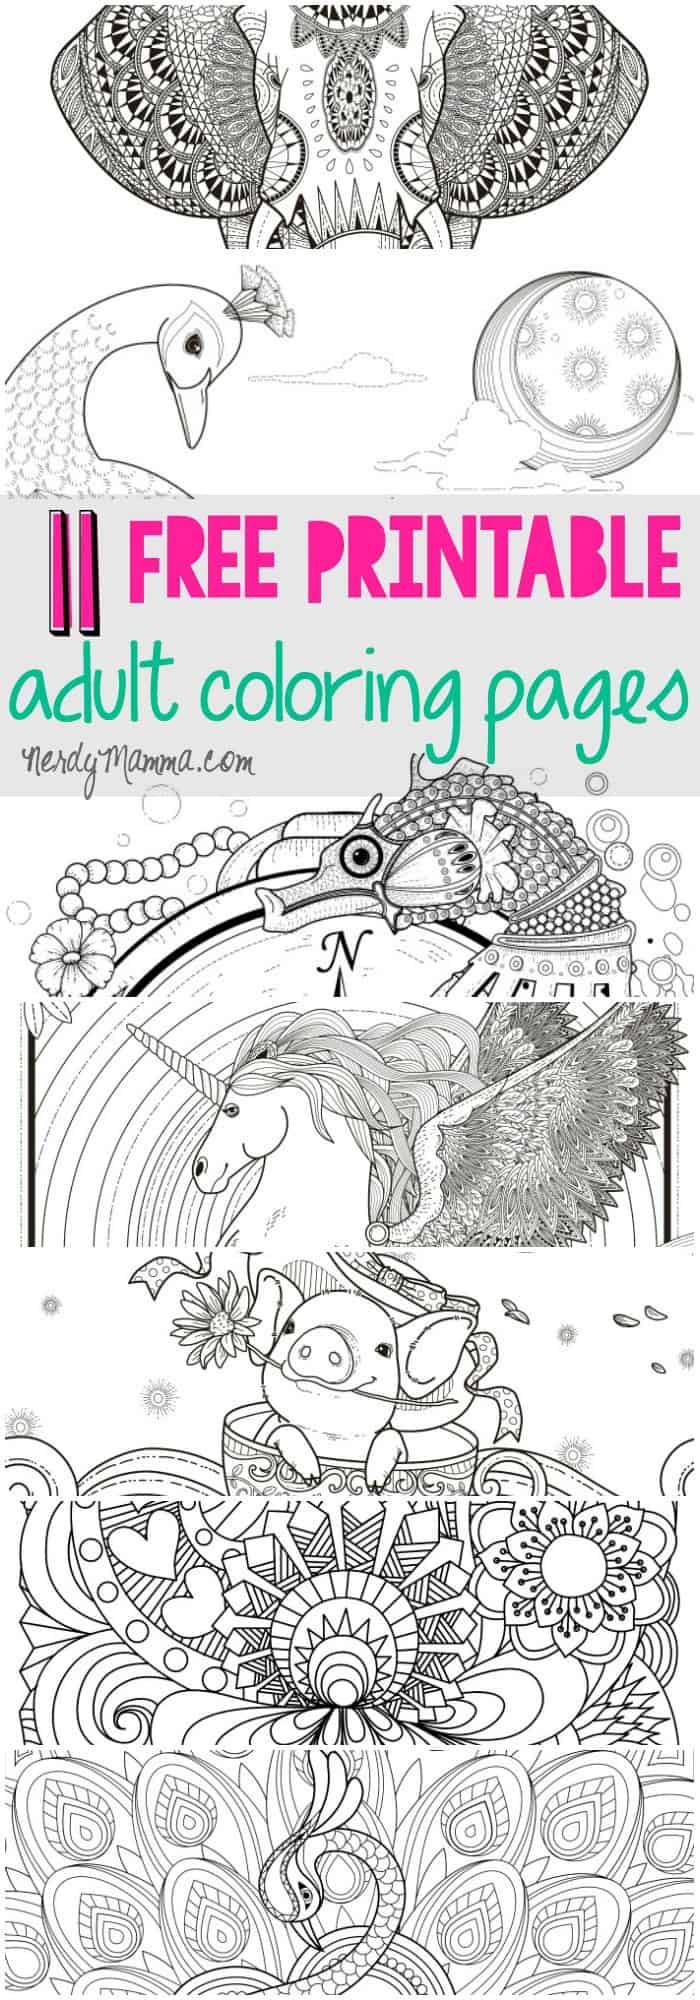 I love these free printable adult coloring pages. a page for every level of coloring skill. Love it!